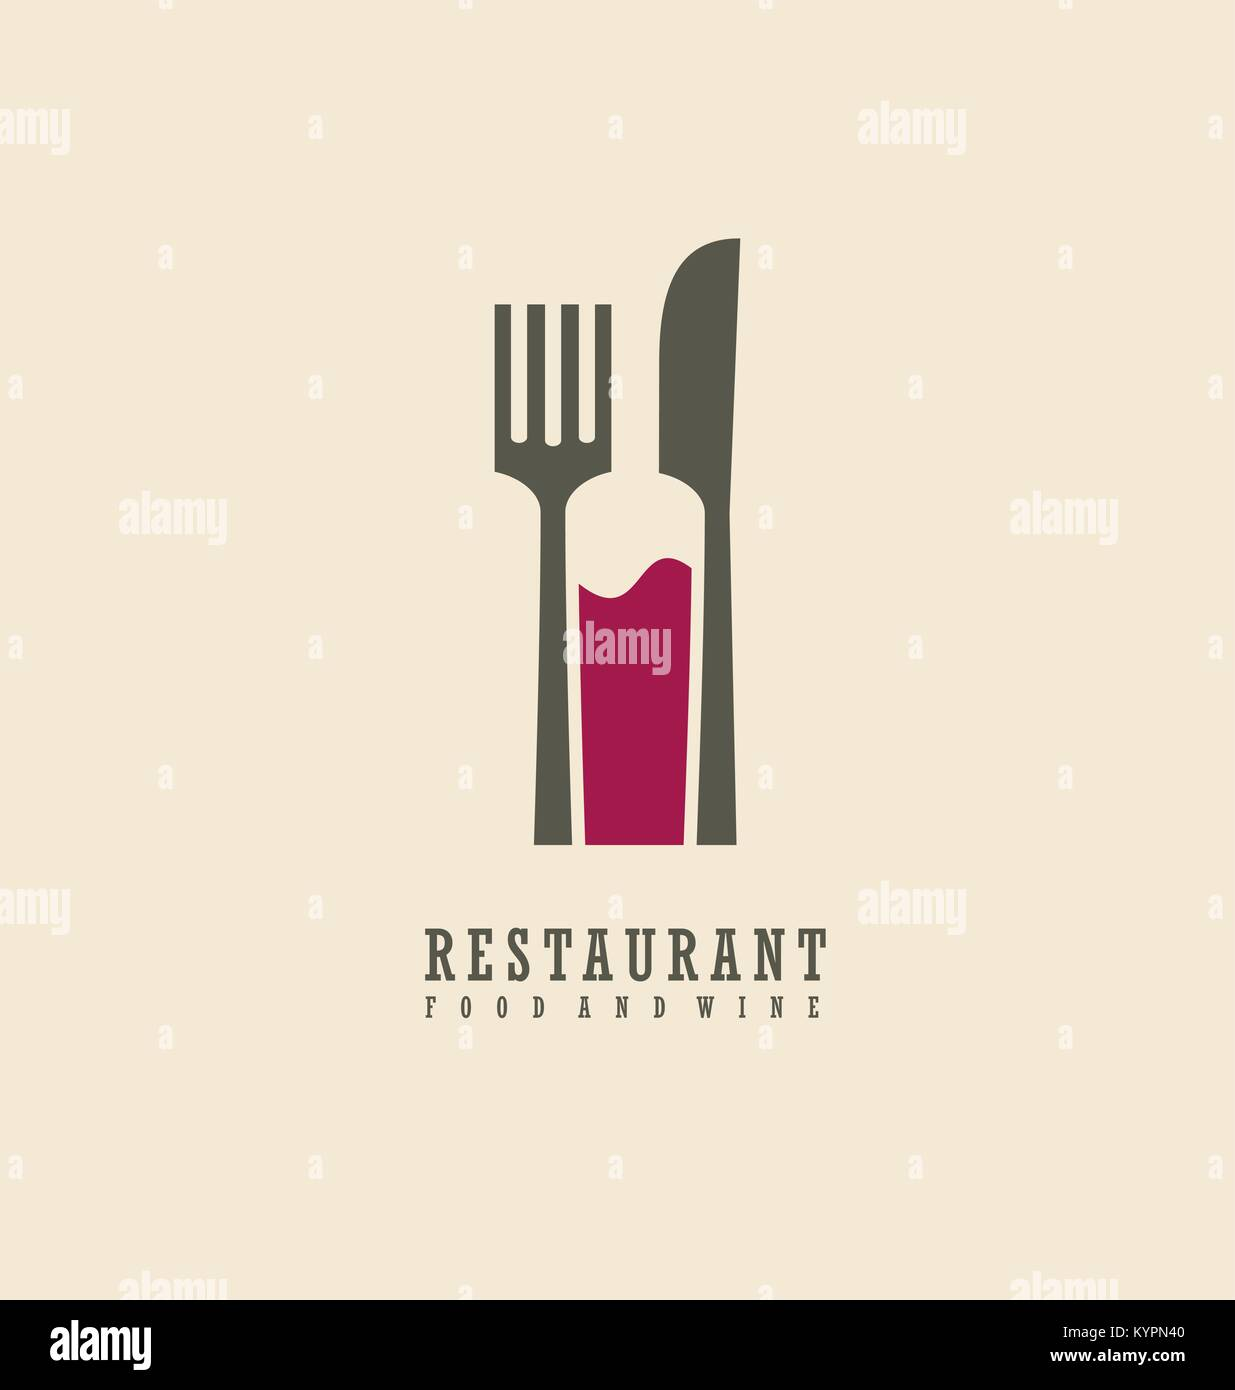 Restaurant logo with knife fork and wine bottle in negative space restaurant logo with knife fork and wine bottle in negative space food and wine symbol design buycottarizona Image collections